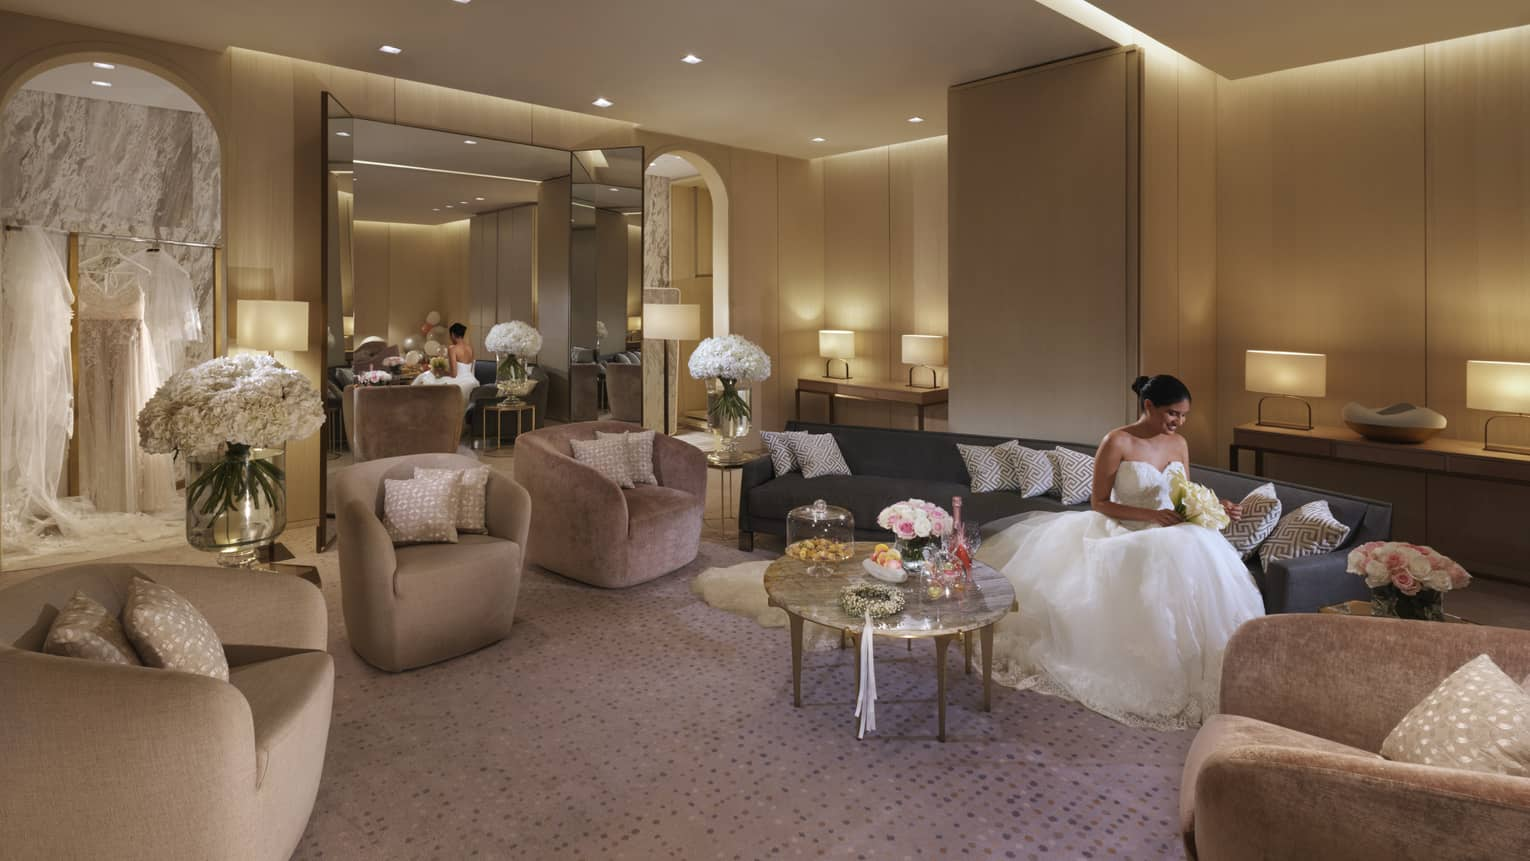 A bride dressed in her wedding dress, sits on a dark couch and reads a note in the bridal suite